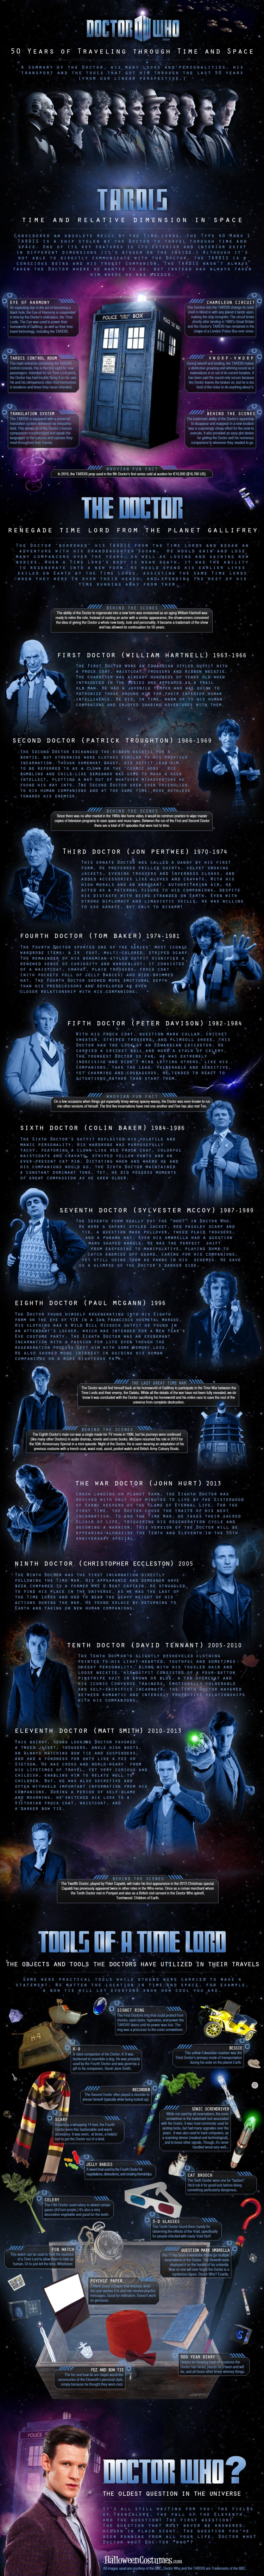 Doctor Who Infographic: 50 Years of Traveling in Time and Space